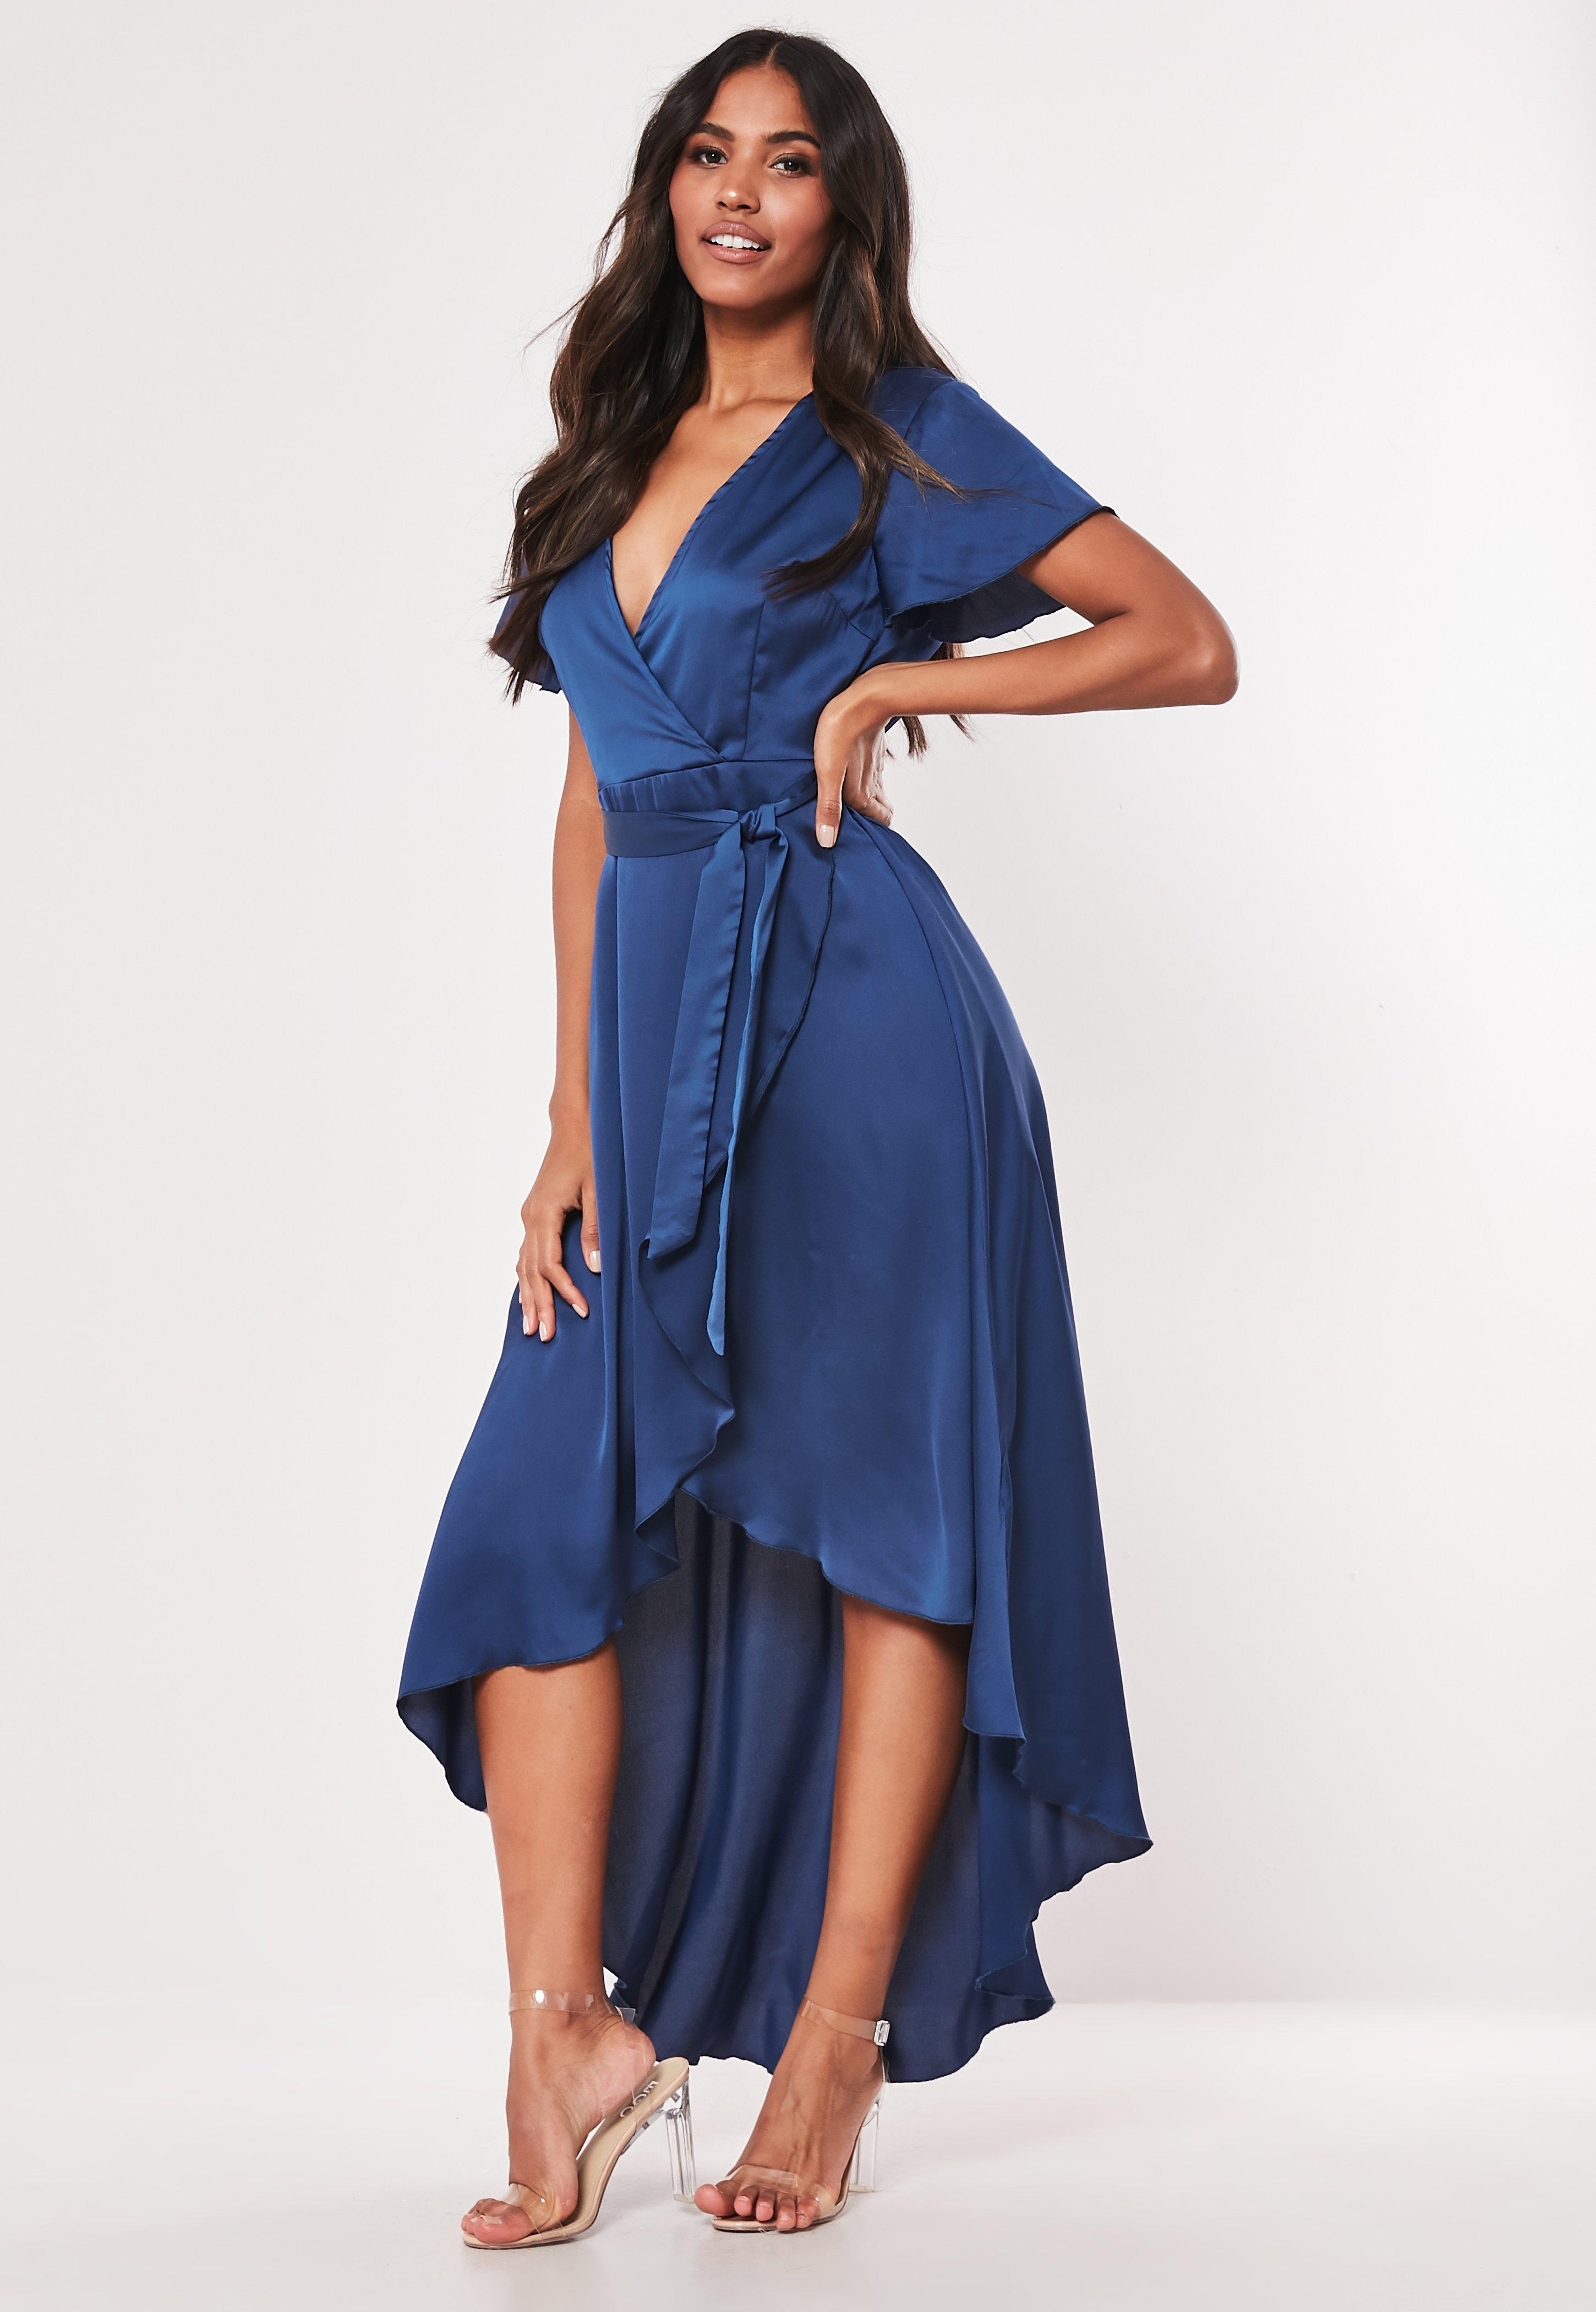 f3e4decf32c3a Wrap Dresses | Wrap dress & Tie Waist Dresses - Missguided